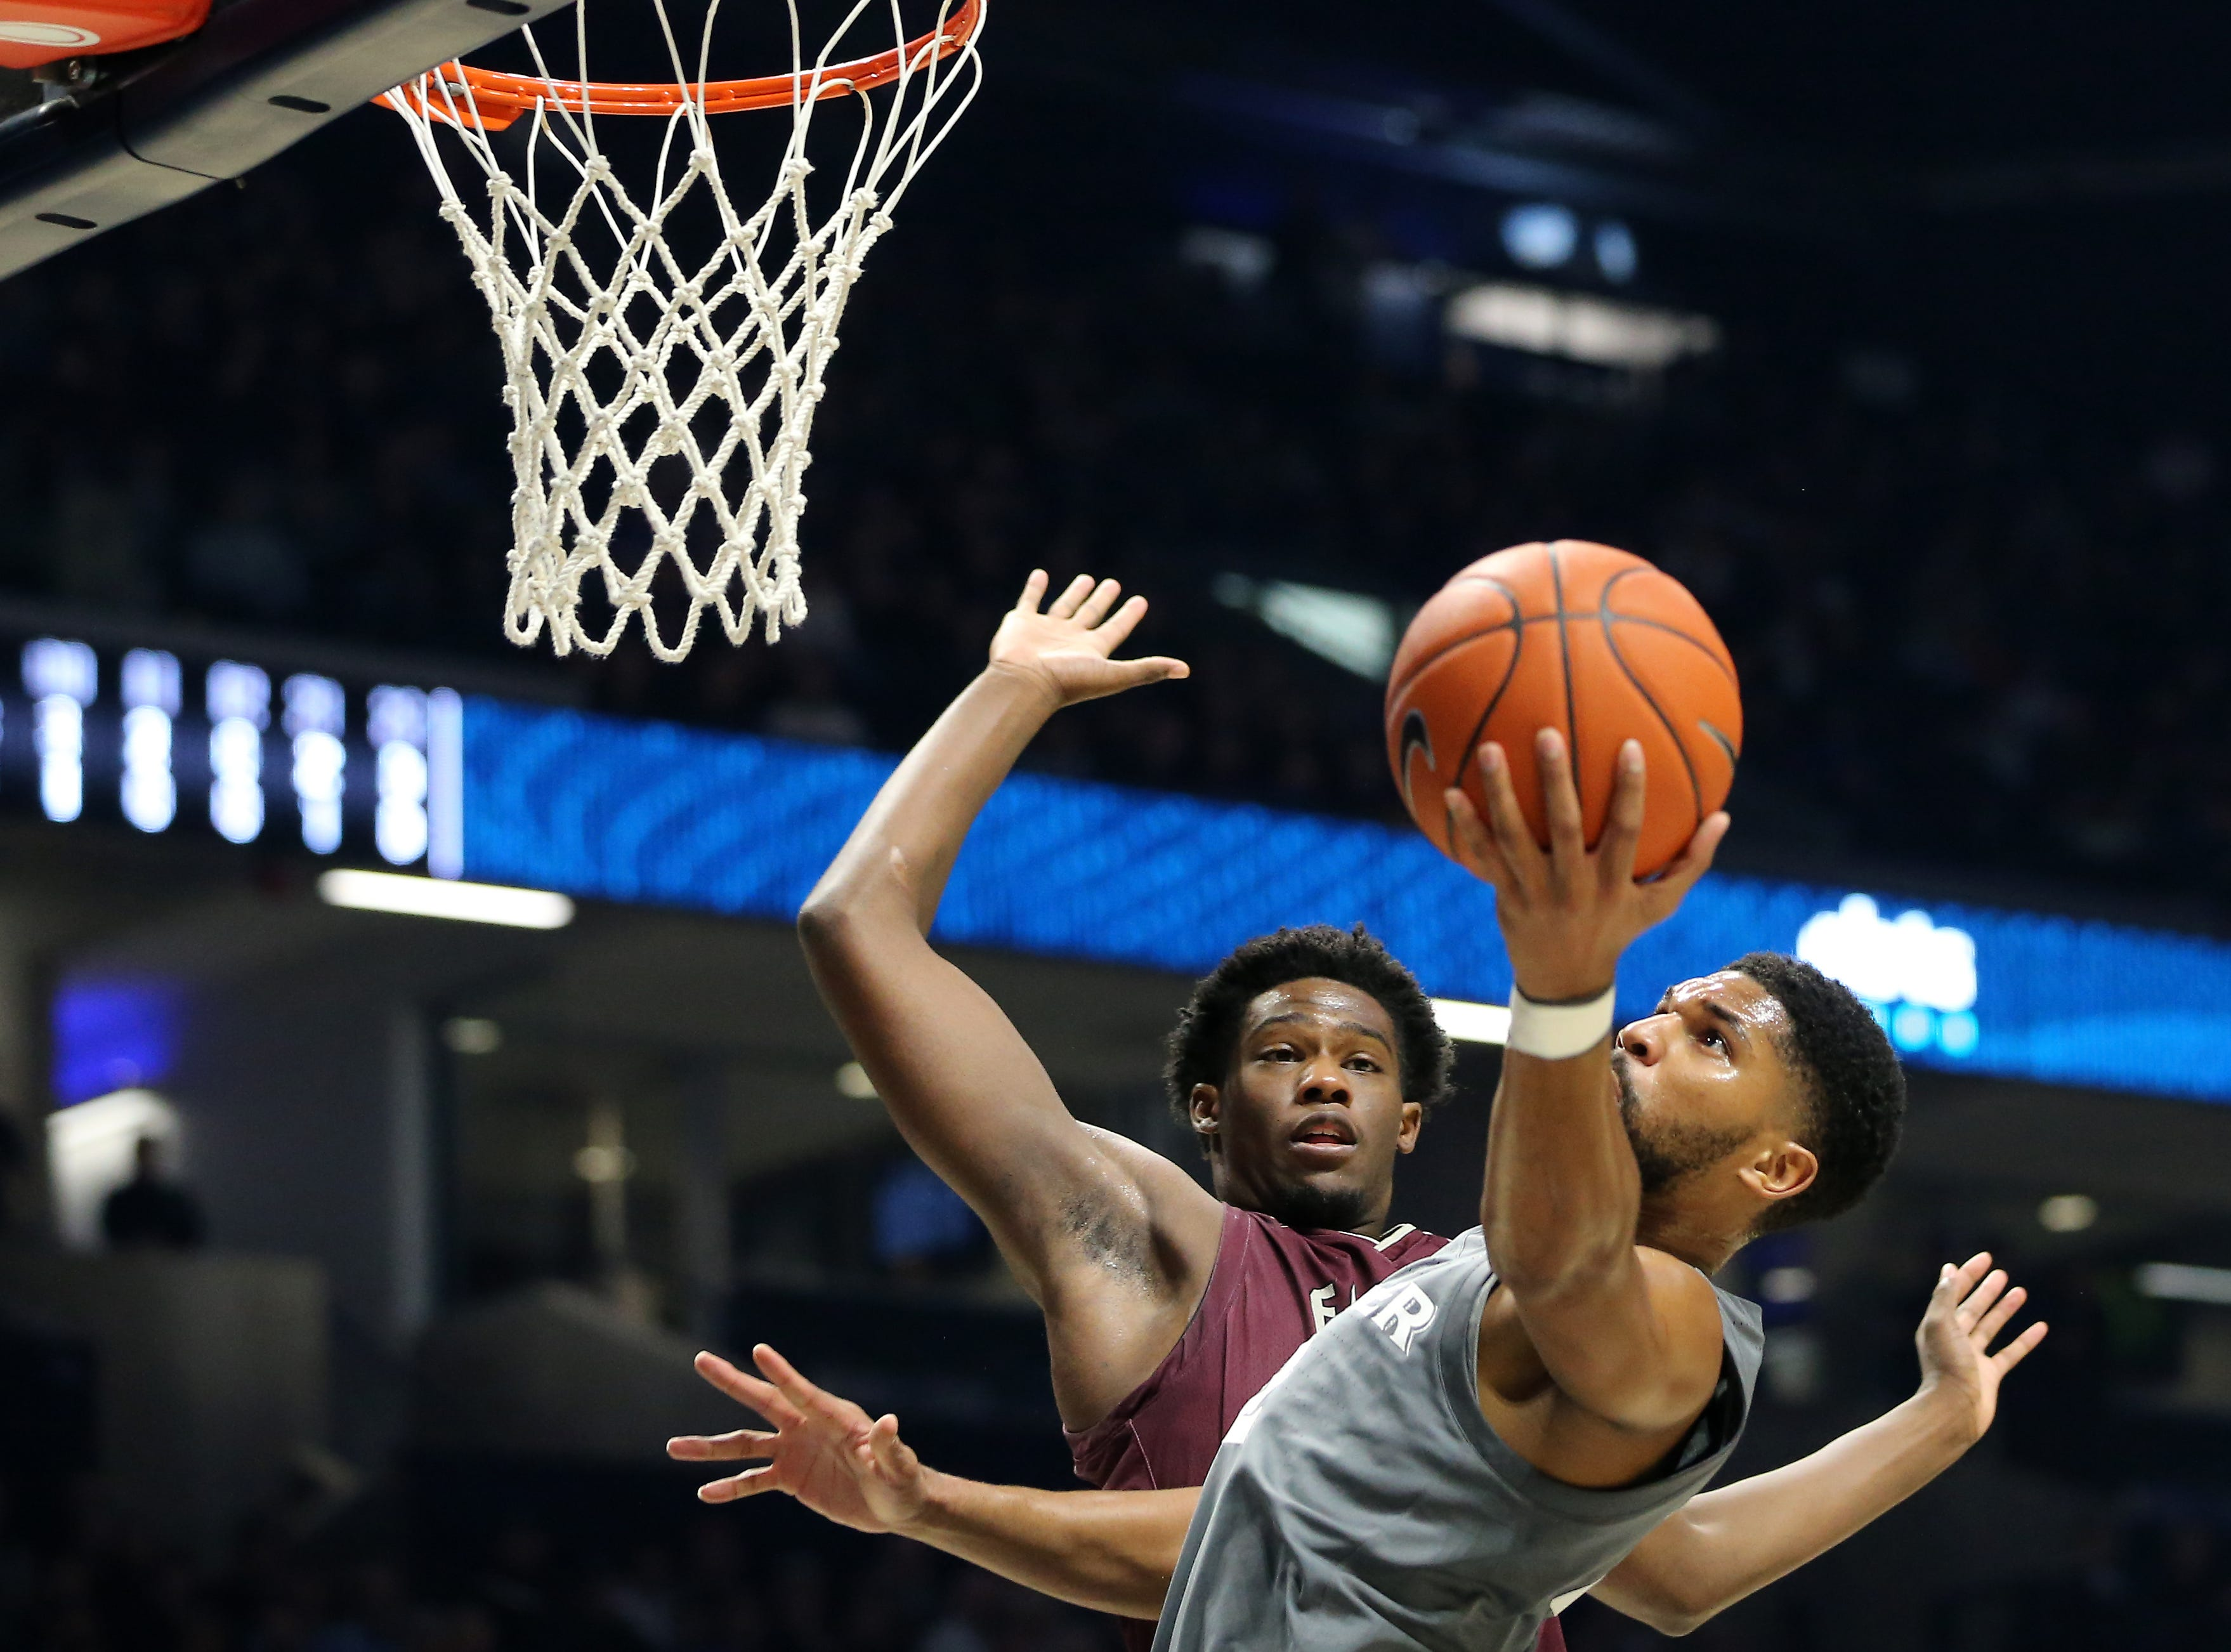 Xavier Musketeers guard Kyle Castlin (2) scores a basket as Eastern Kentucky Colonels forward Tre King (12) defends in the first half of an NCAA college basketball game, Saturday, Dec. 15, 2018, at Cintas Center in Cincinnati, Ohio